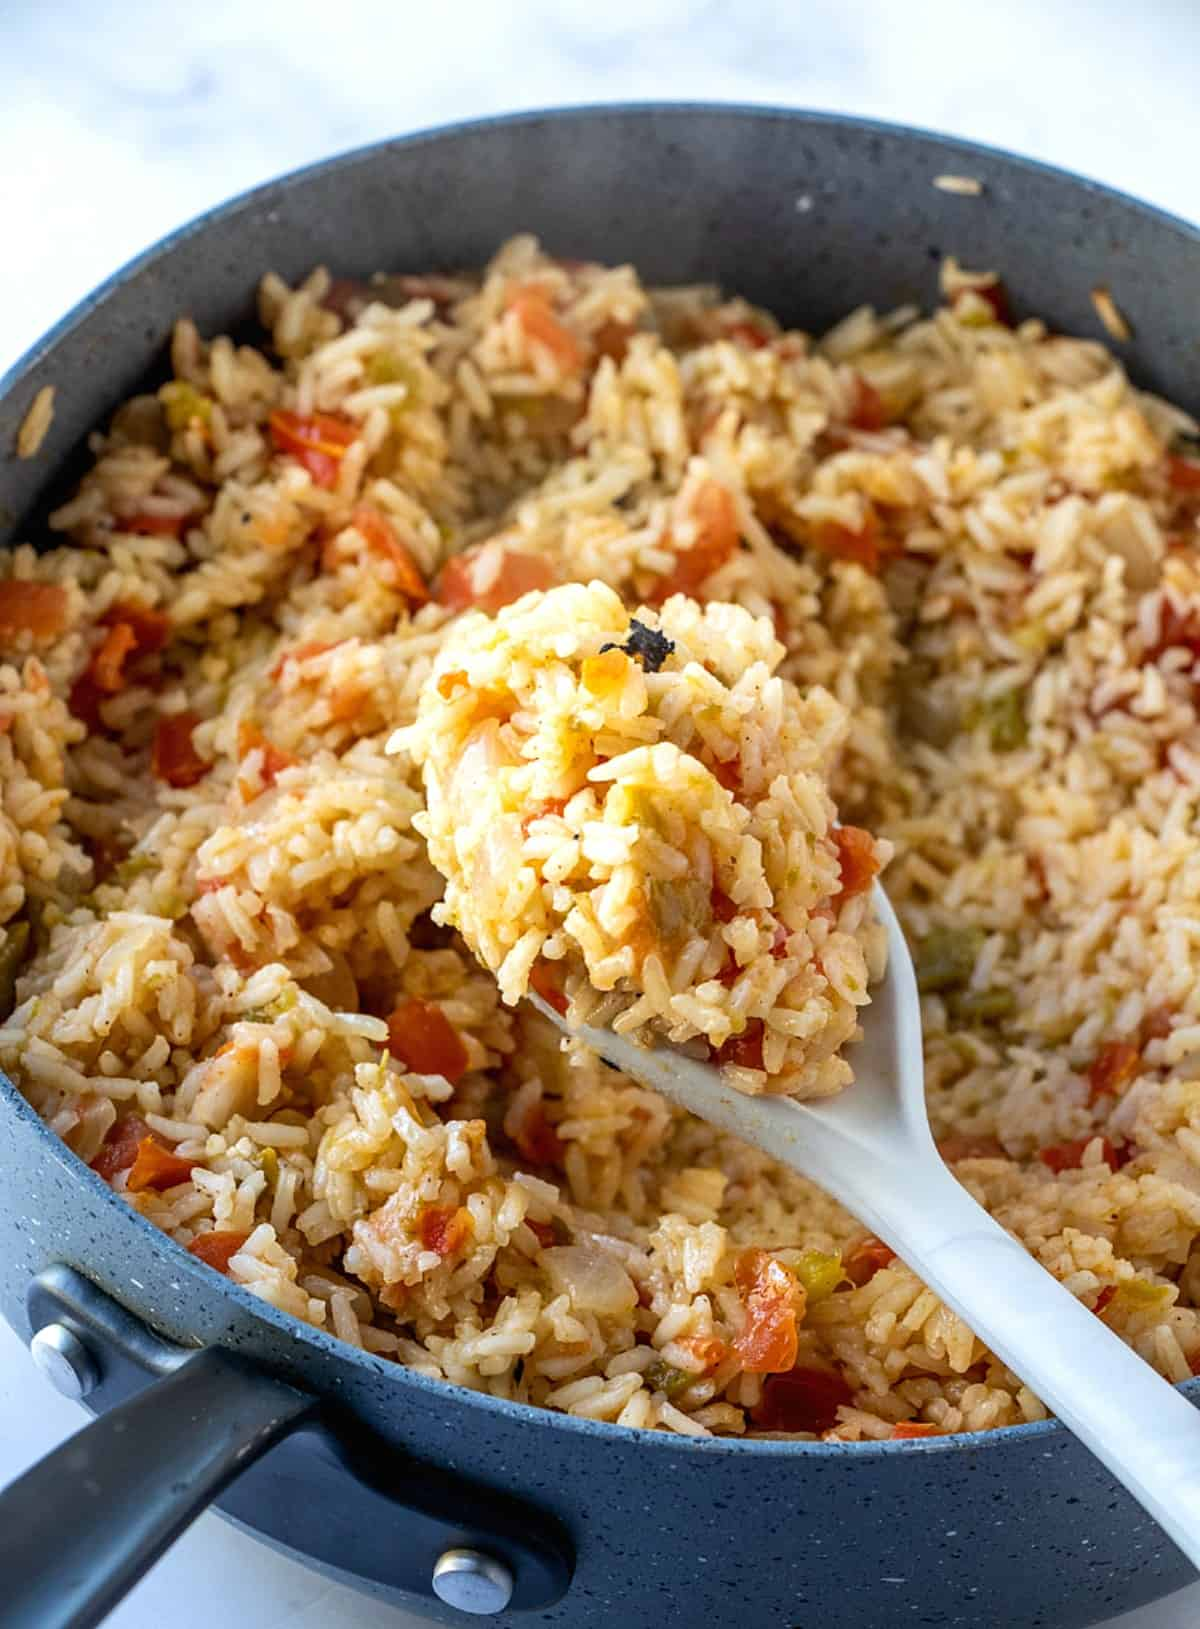 A wooden spoon has scooped up a mound of Spanish rice close to the lens so that we can see all of the ingredients inside.